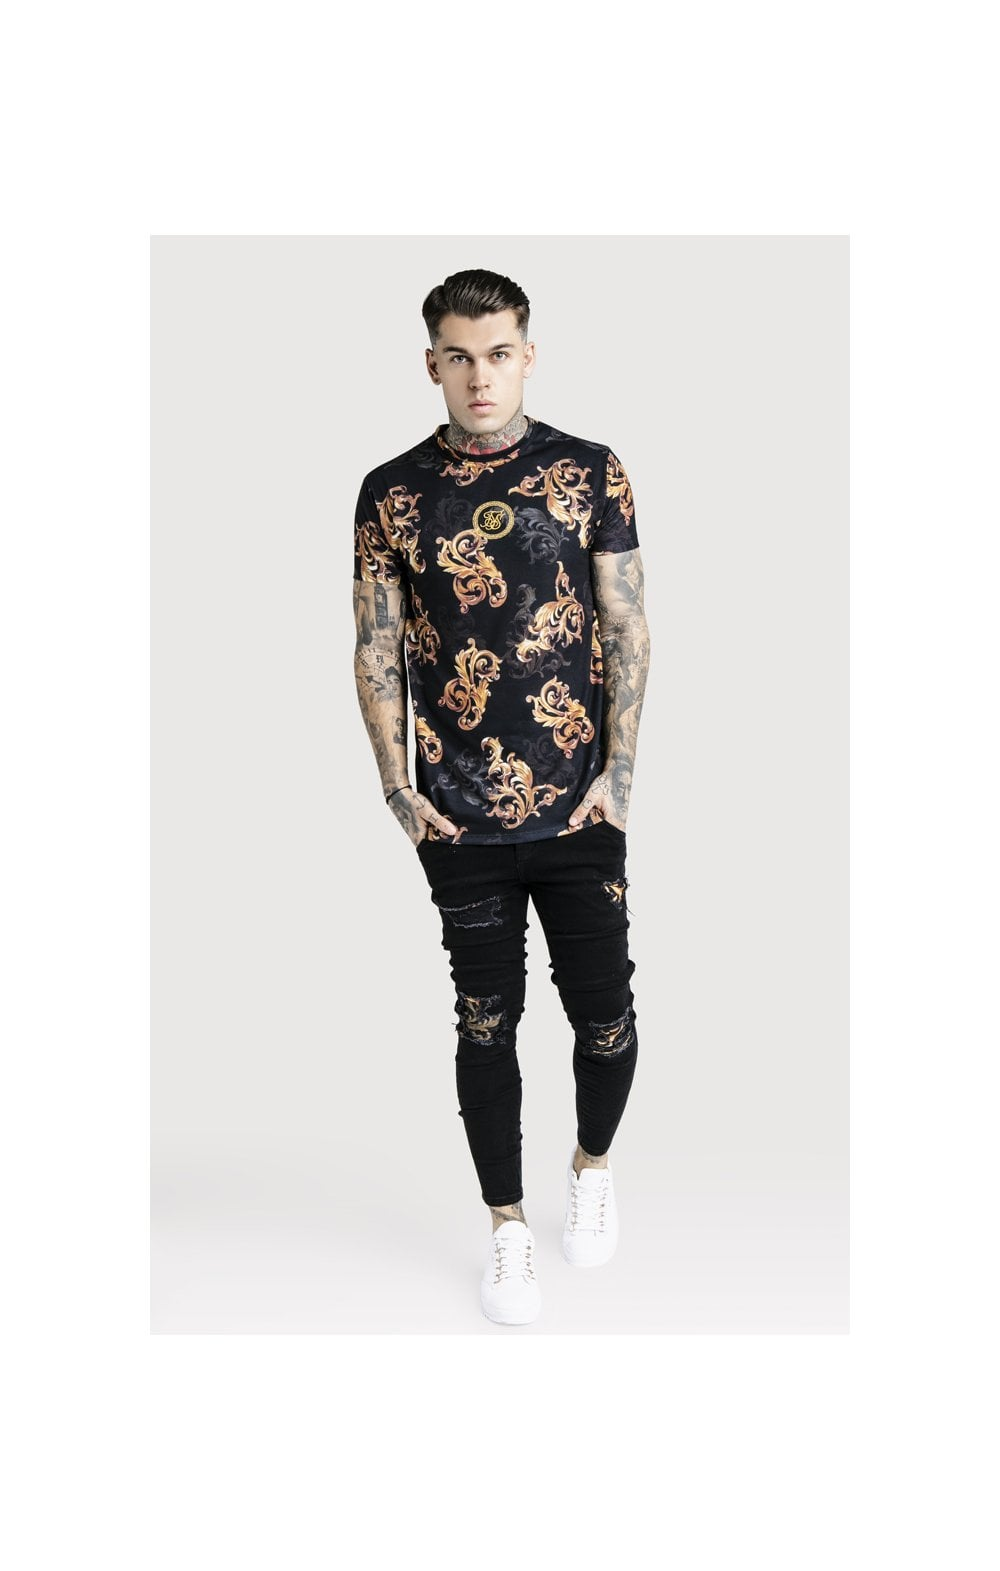 SikSilk x Dani Alves Reverse Collar Tee - Black (5)